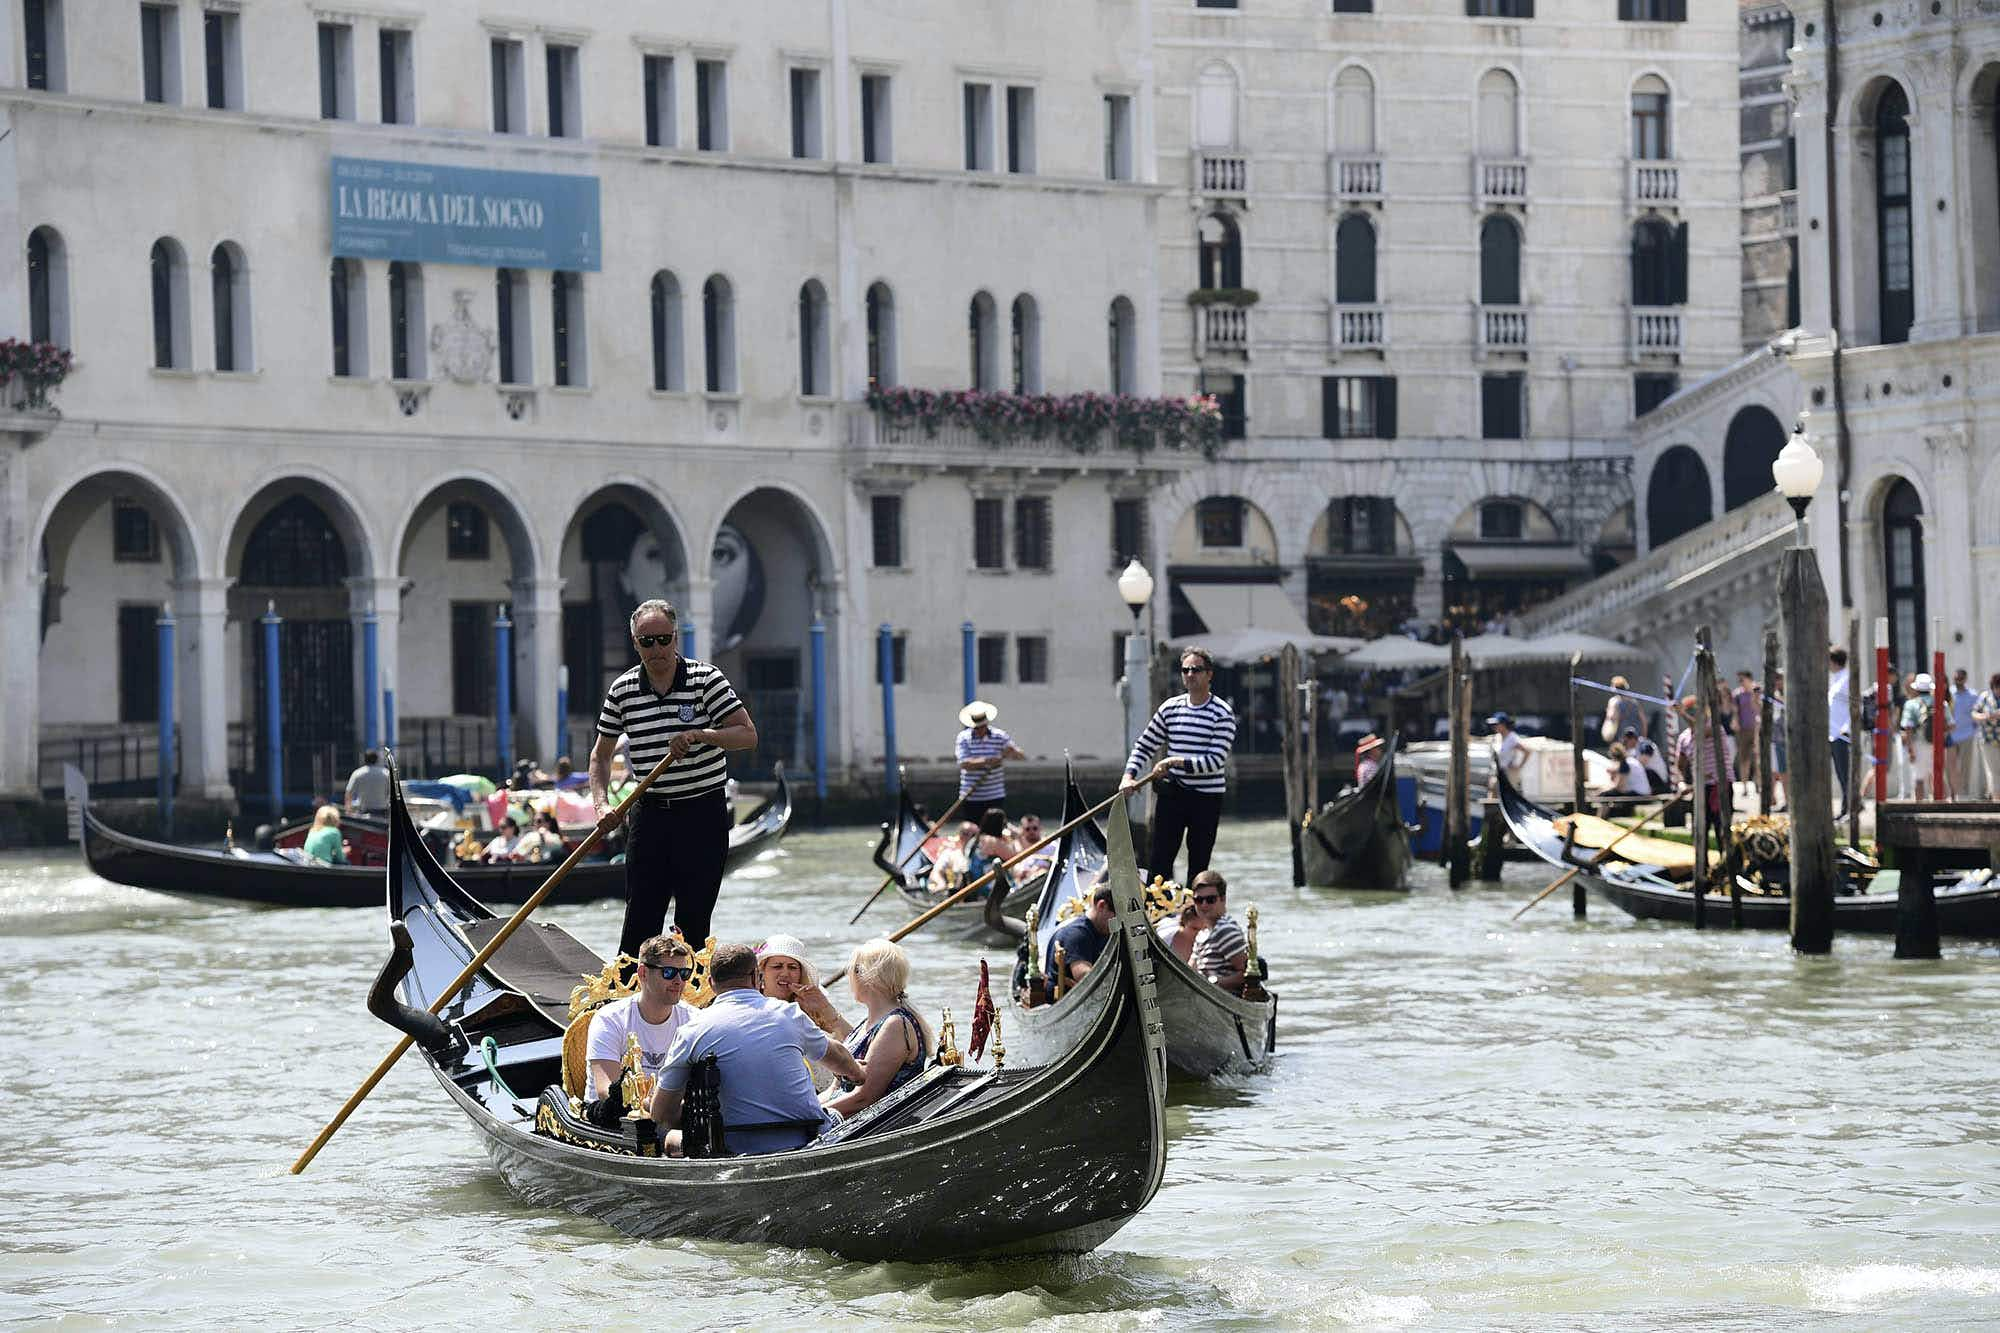 Venice delays plan to start charging entry fees